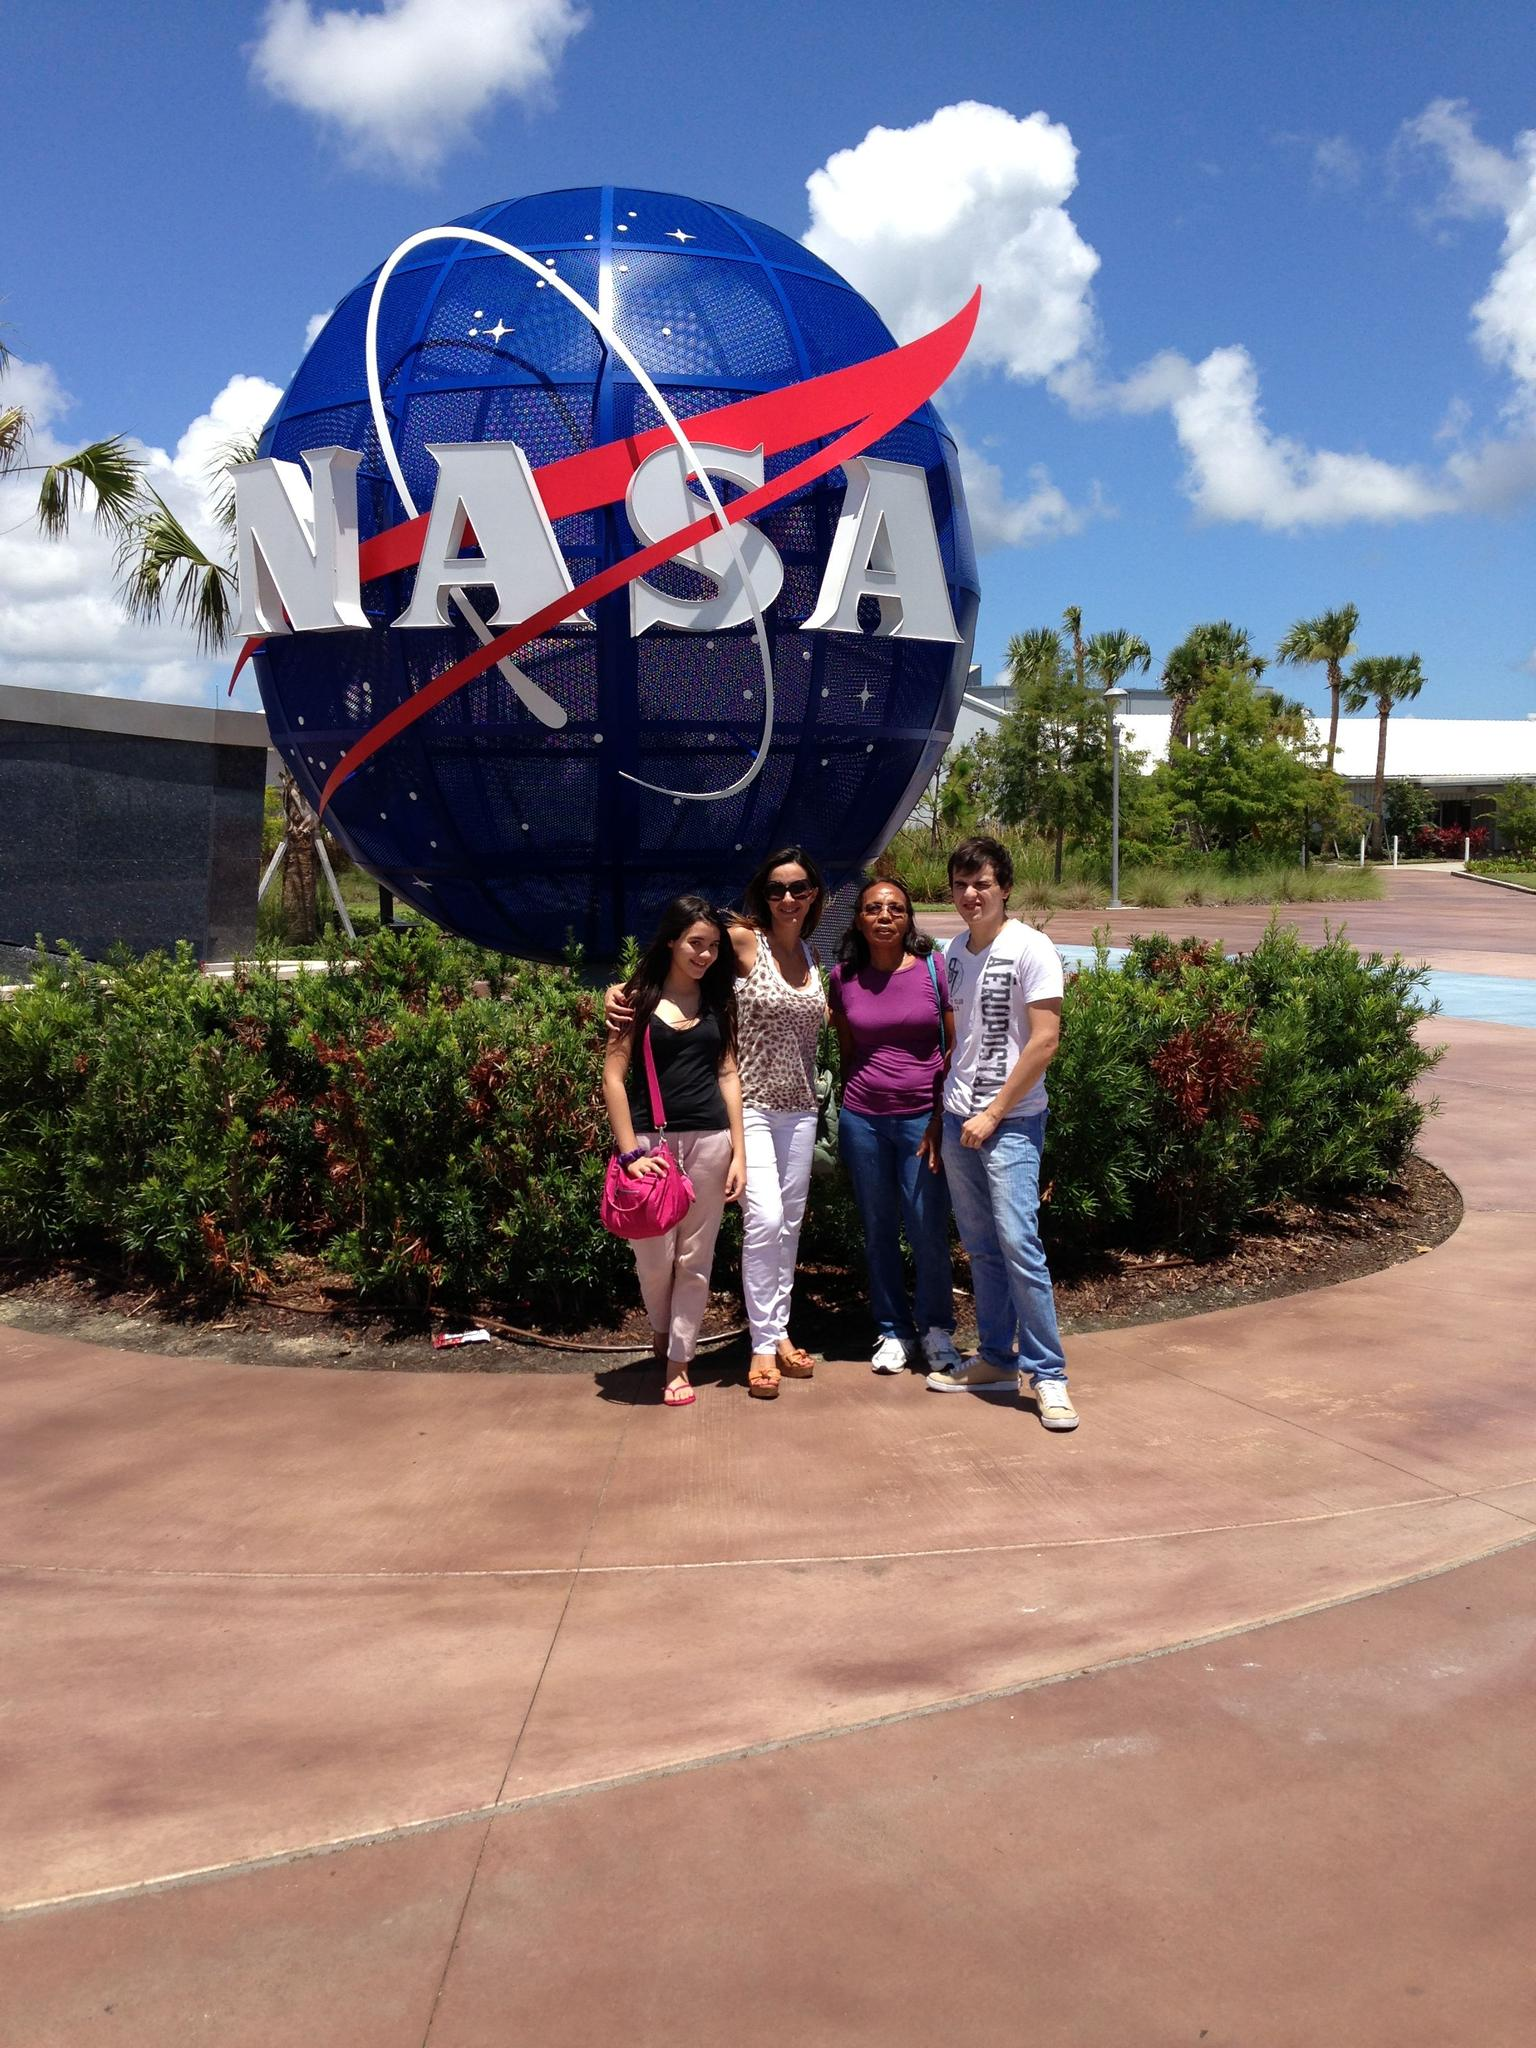 Kennedy Space Center at Cape Canaveral